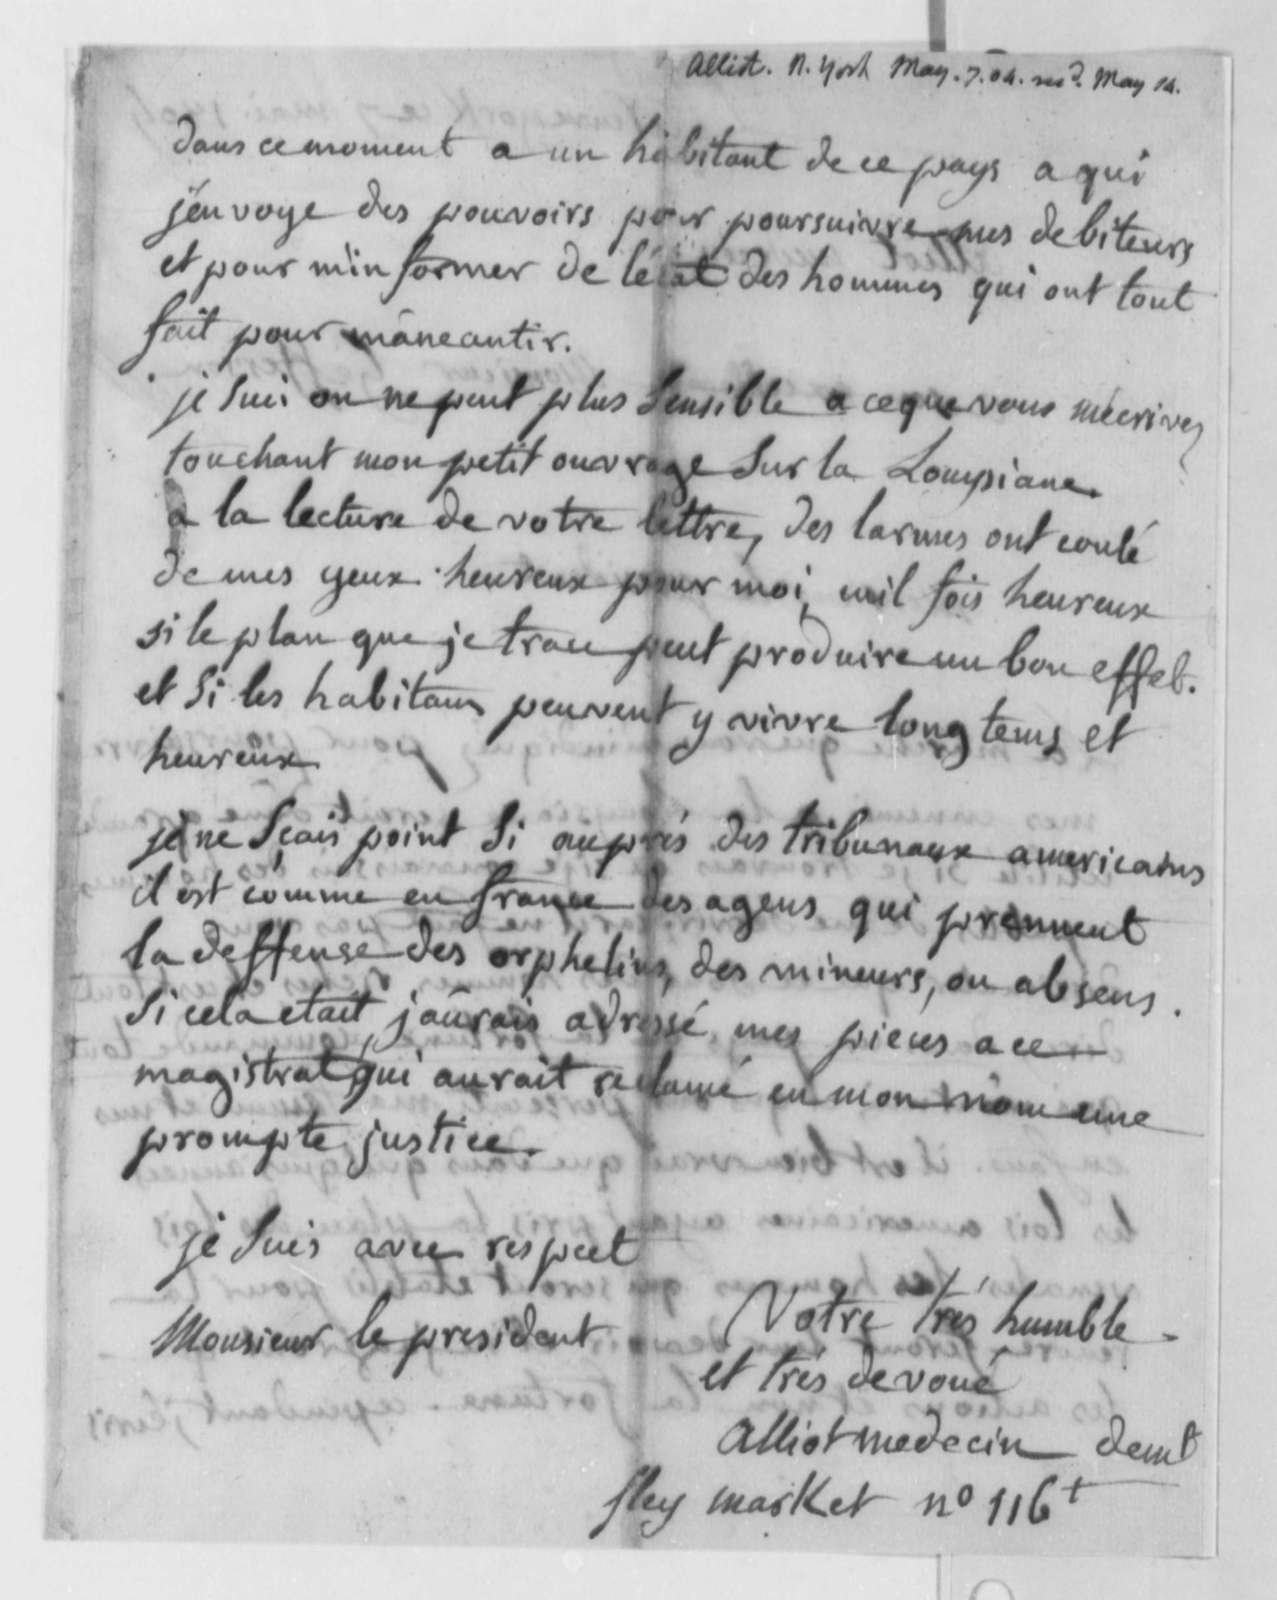 Paul Alliot to Thomas Jefferson, May 7, 1804, in French